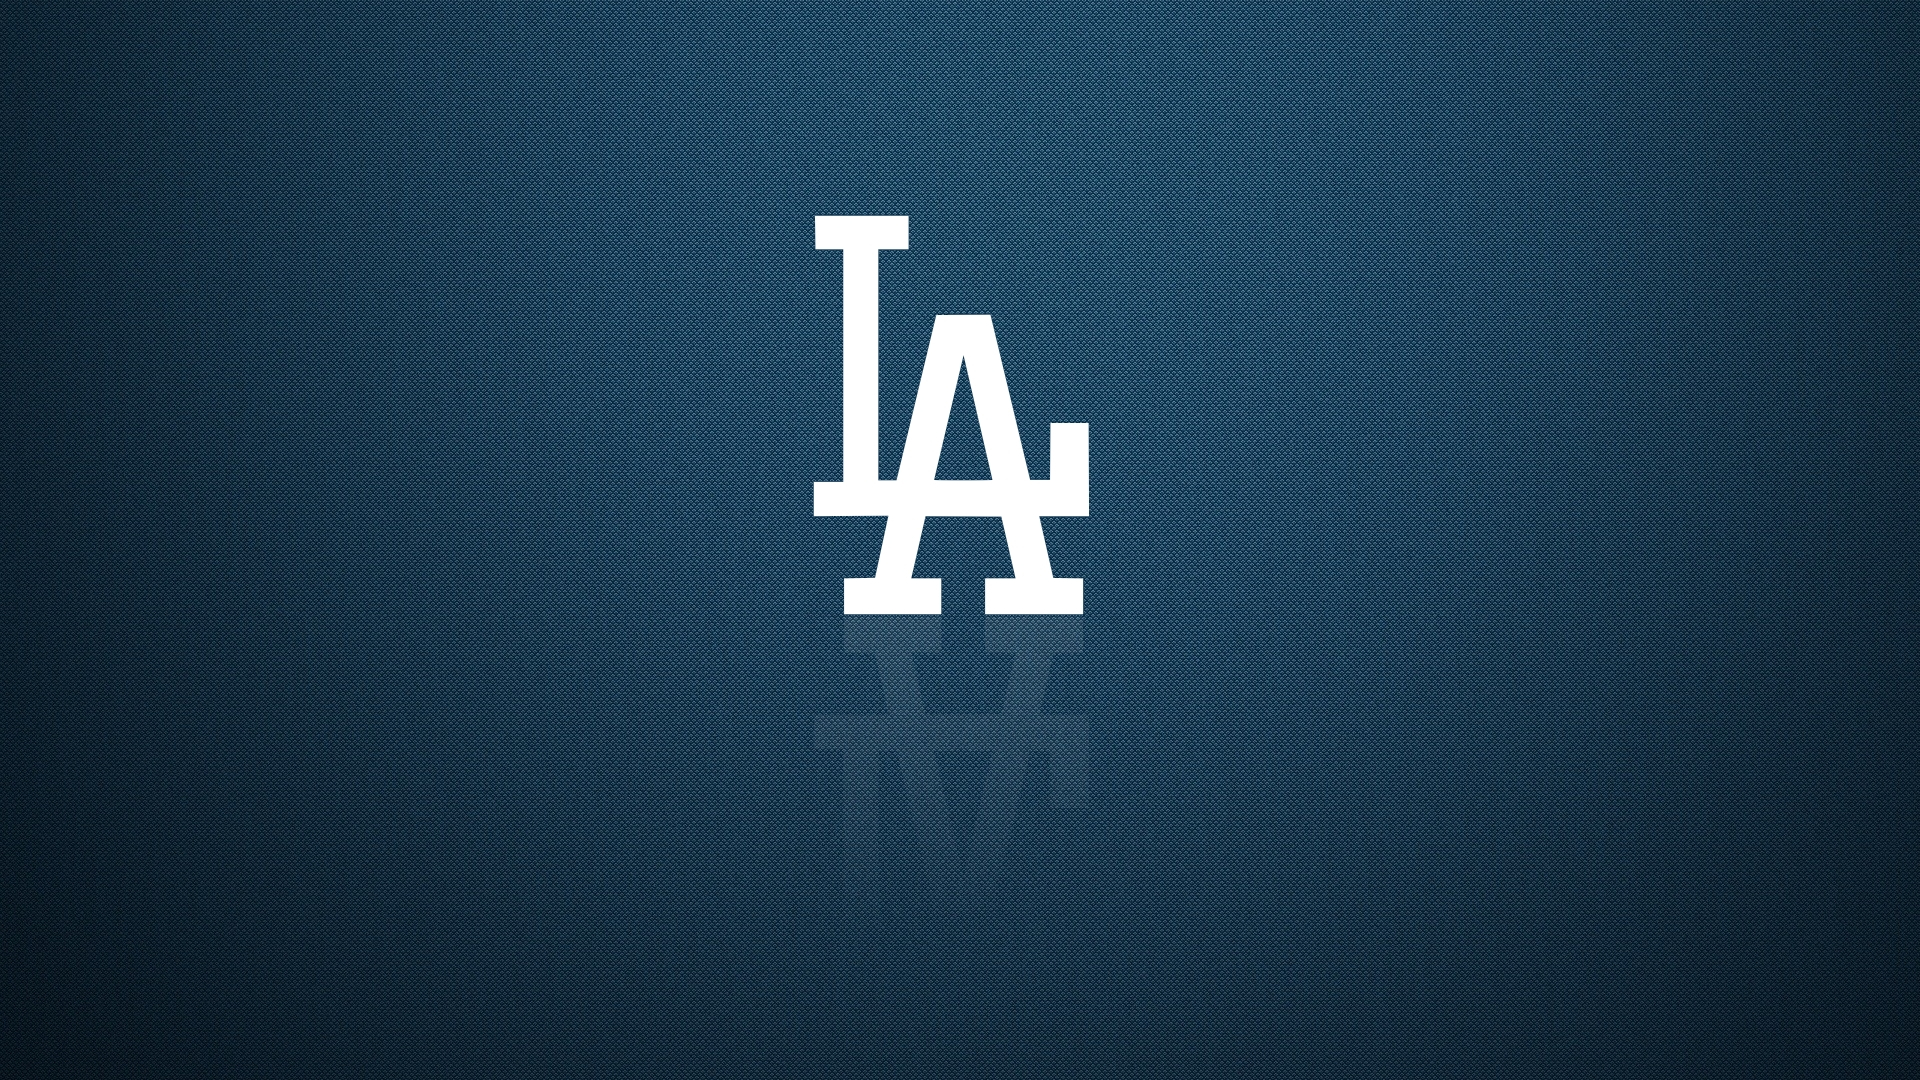 Free Download Los Angeles Dodgers Logo Wallpaper 1920x1200 For